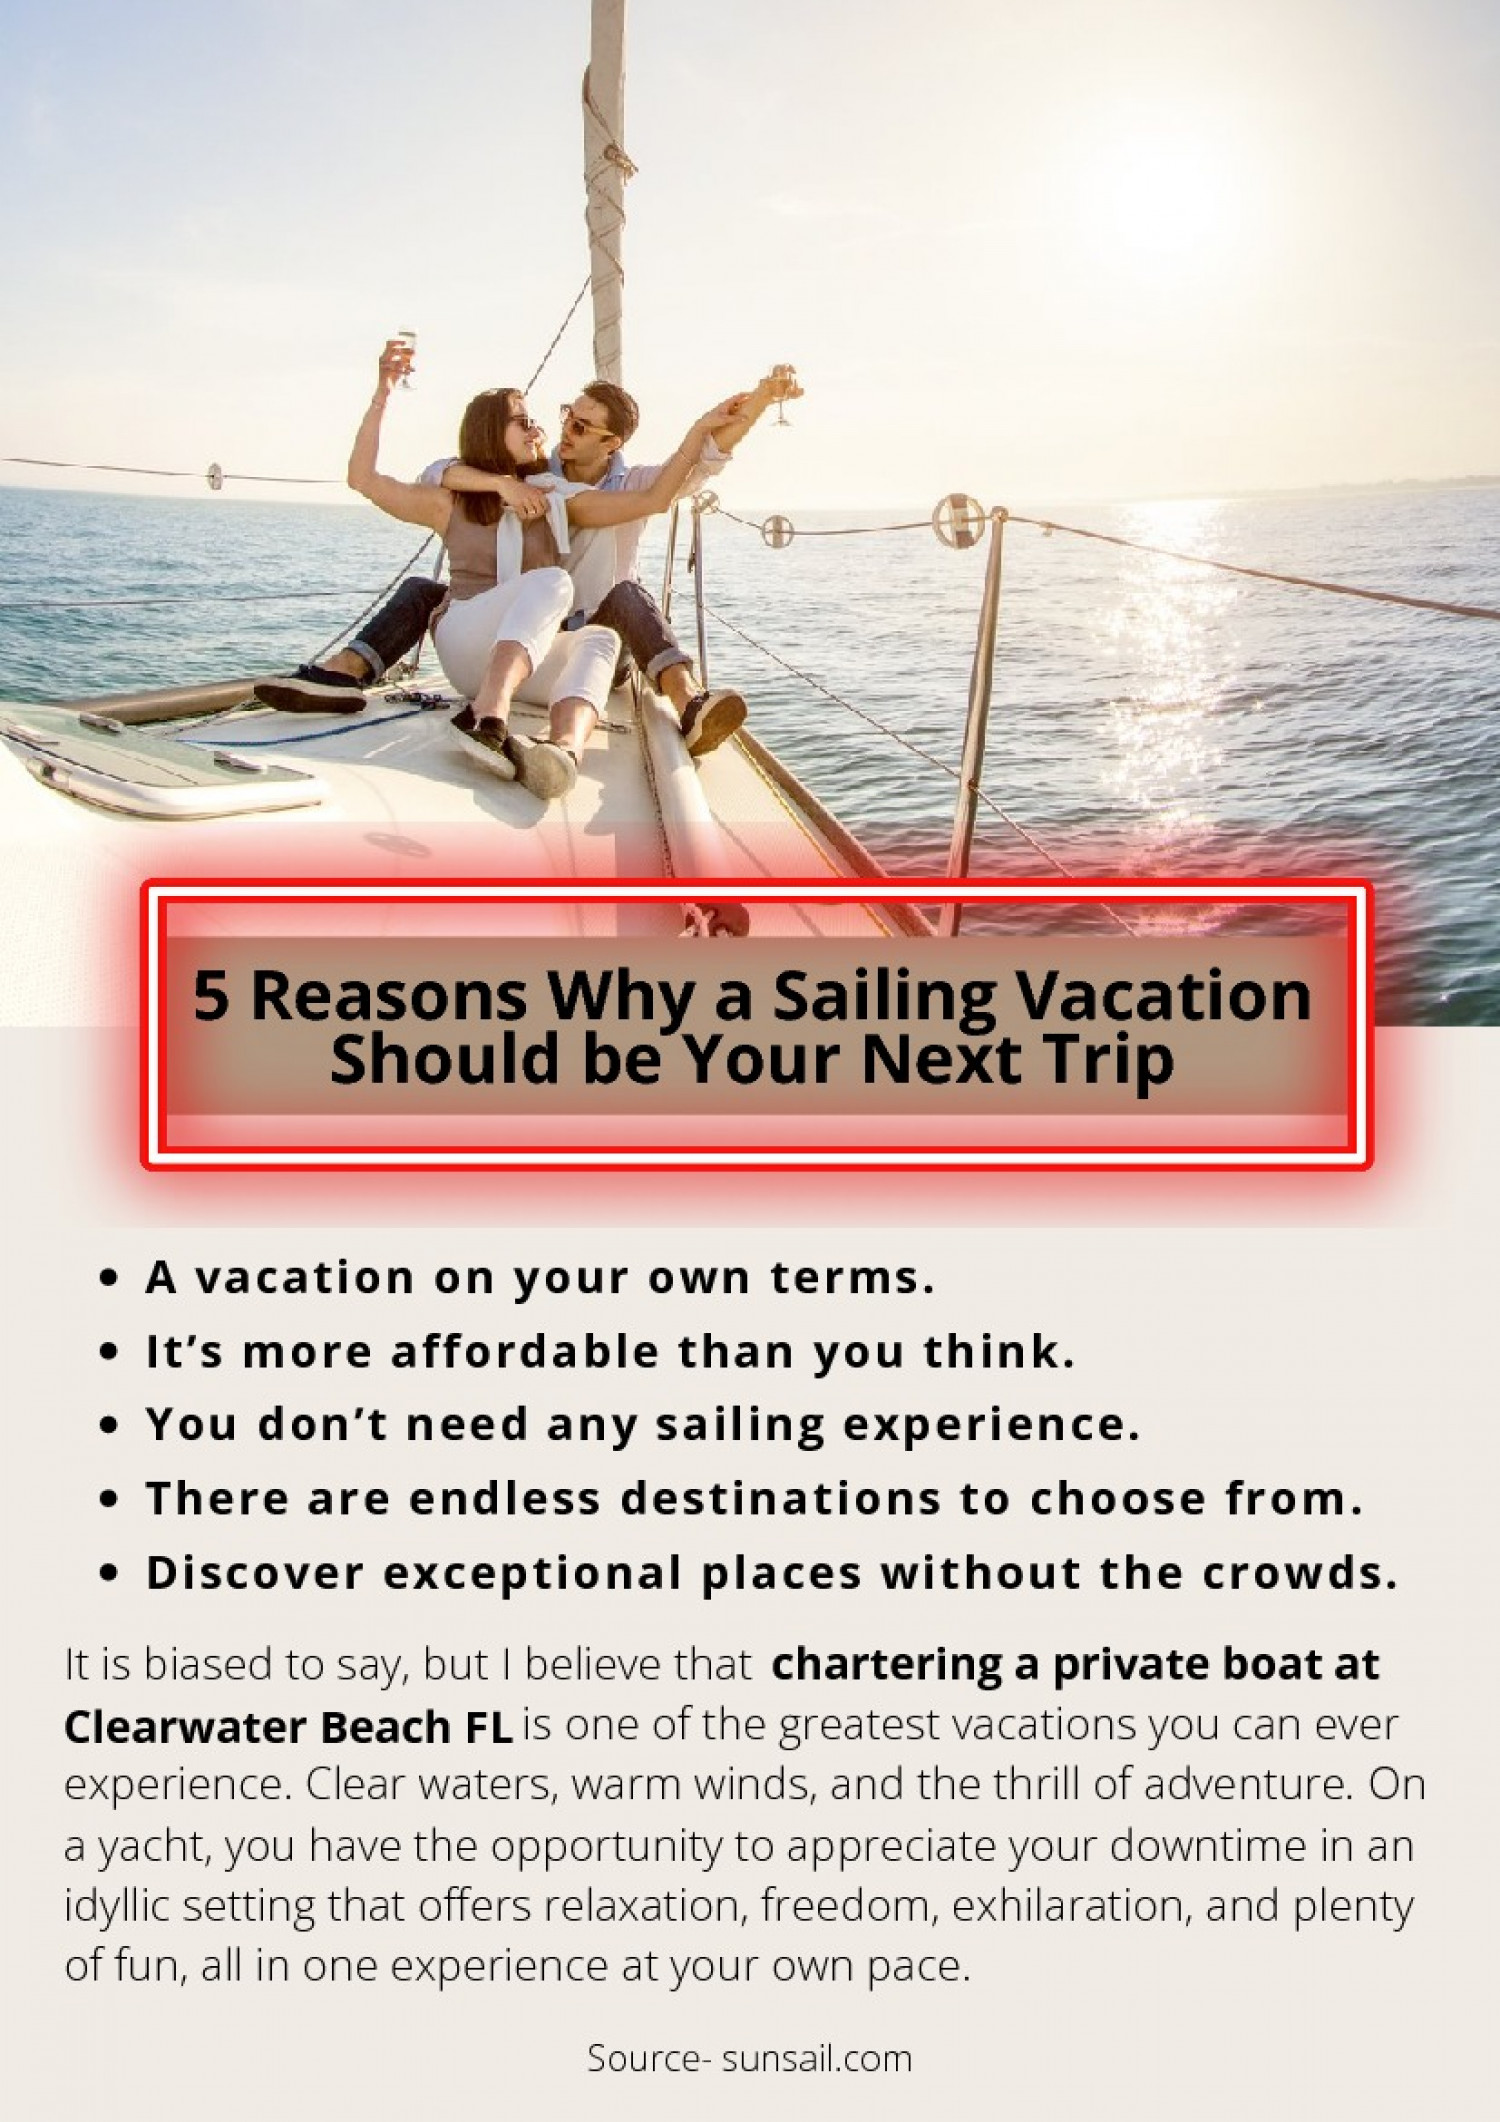 5 Reasons Why a Sailing Vacation Should be Your Next Trip Infographic